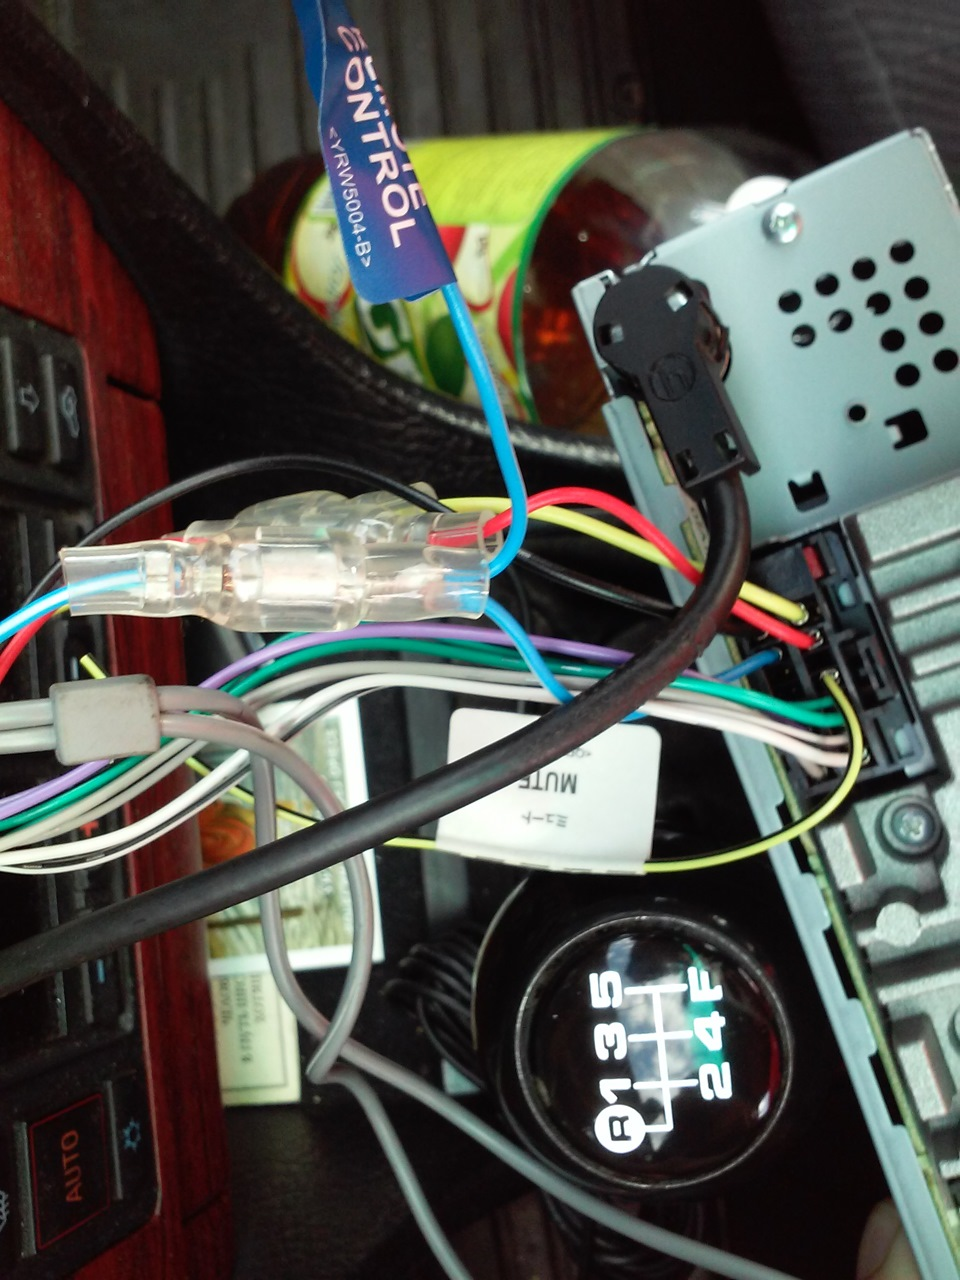 551f8ccs-960 D Wiring Diagram For Pioneer on